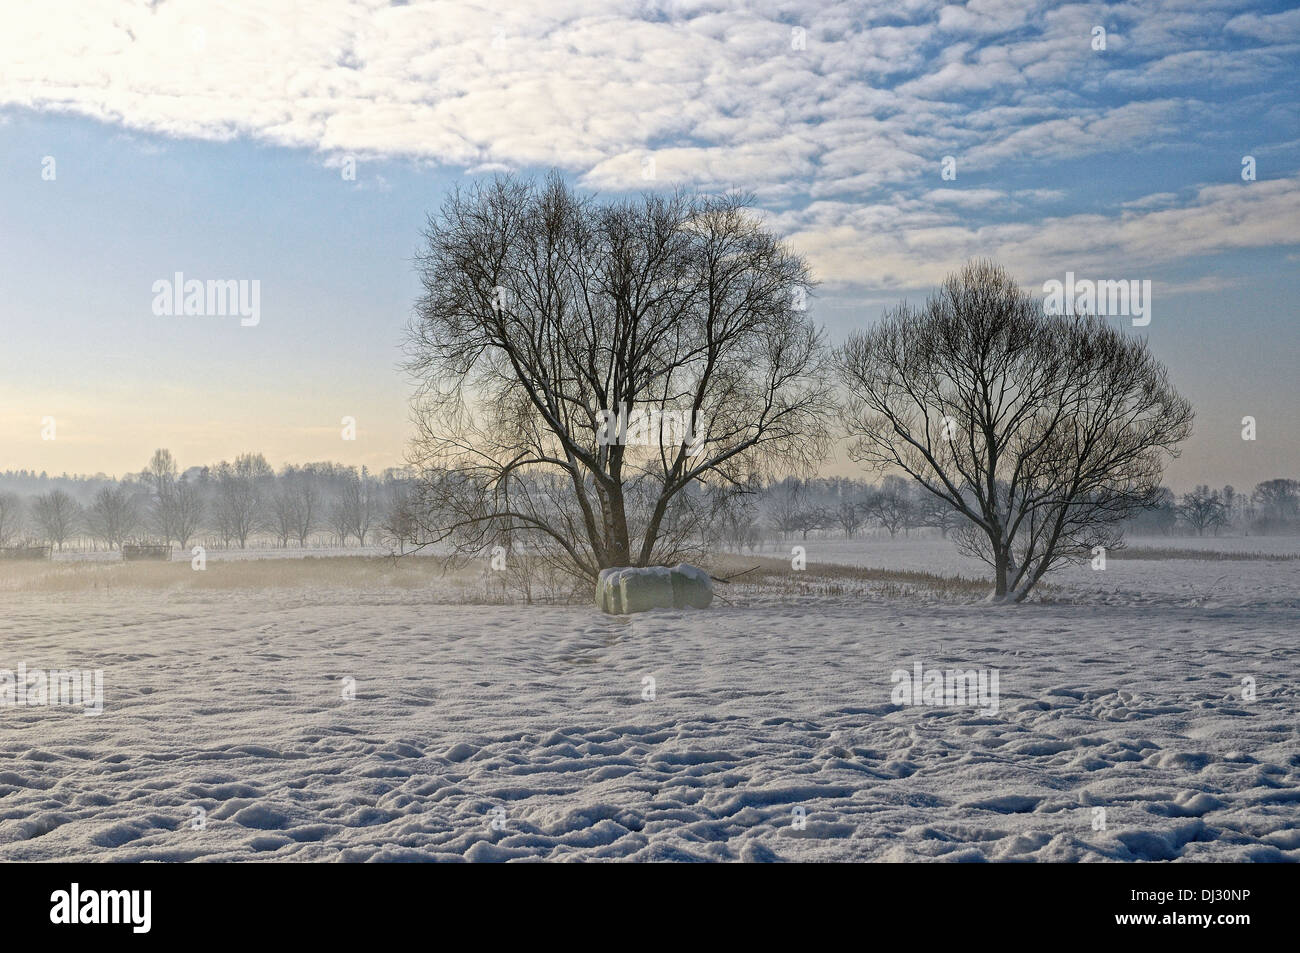 on cold winter mornings - Stock Image